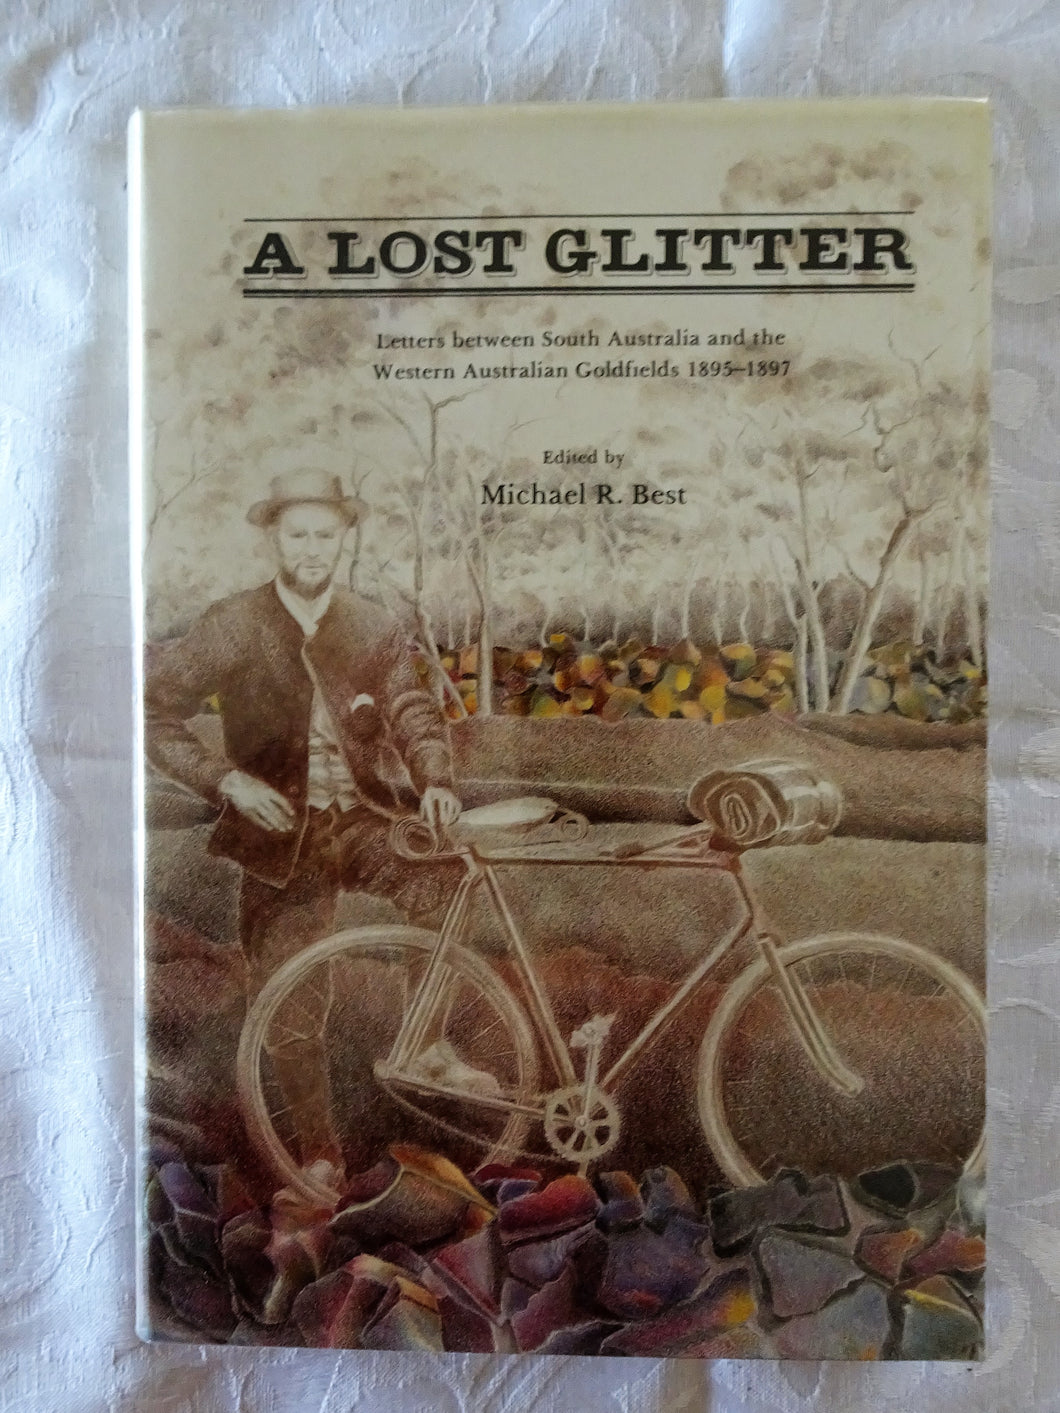 A Lost Glitter edited by Michael R. Best